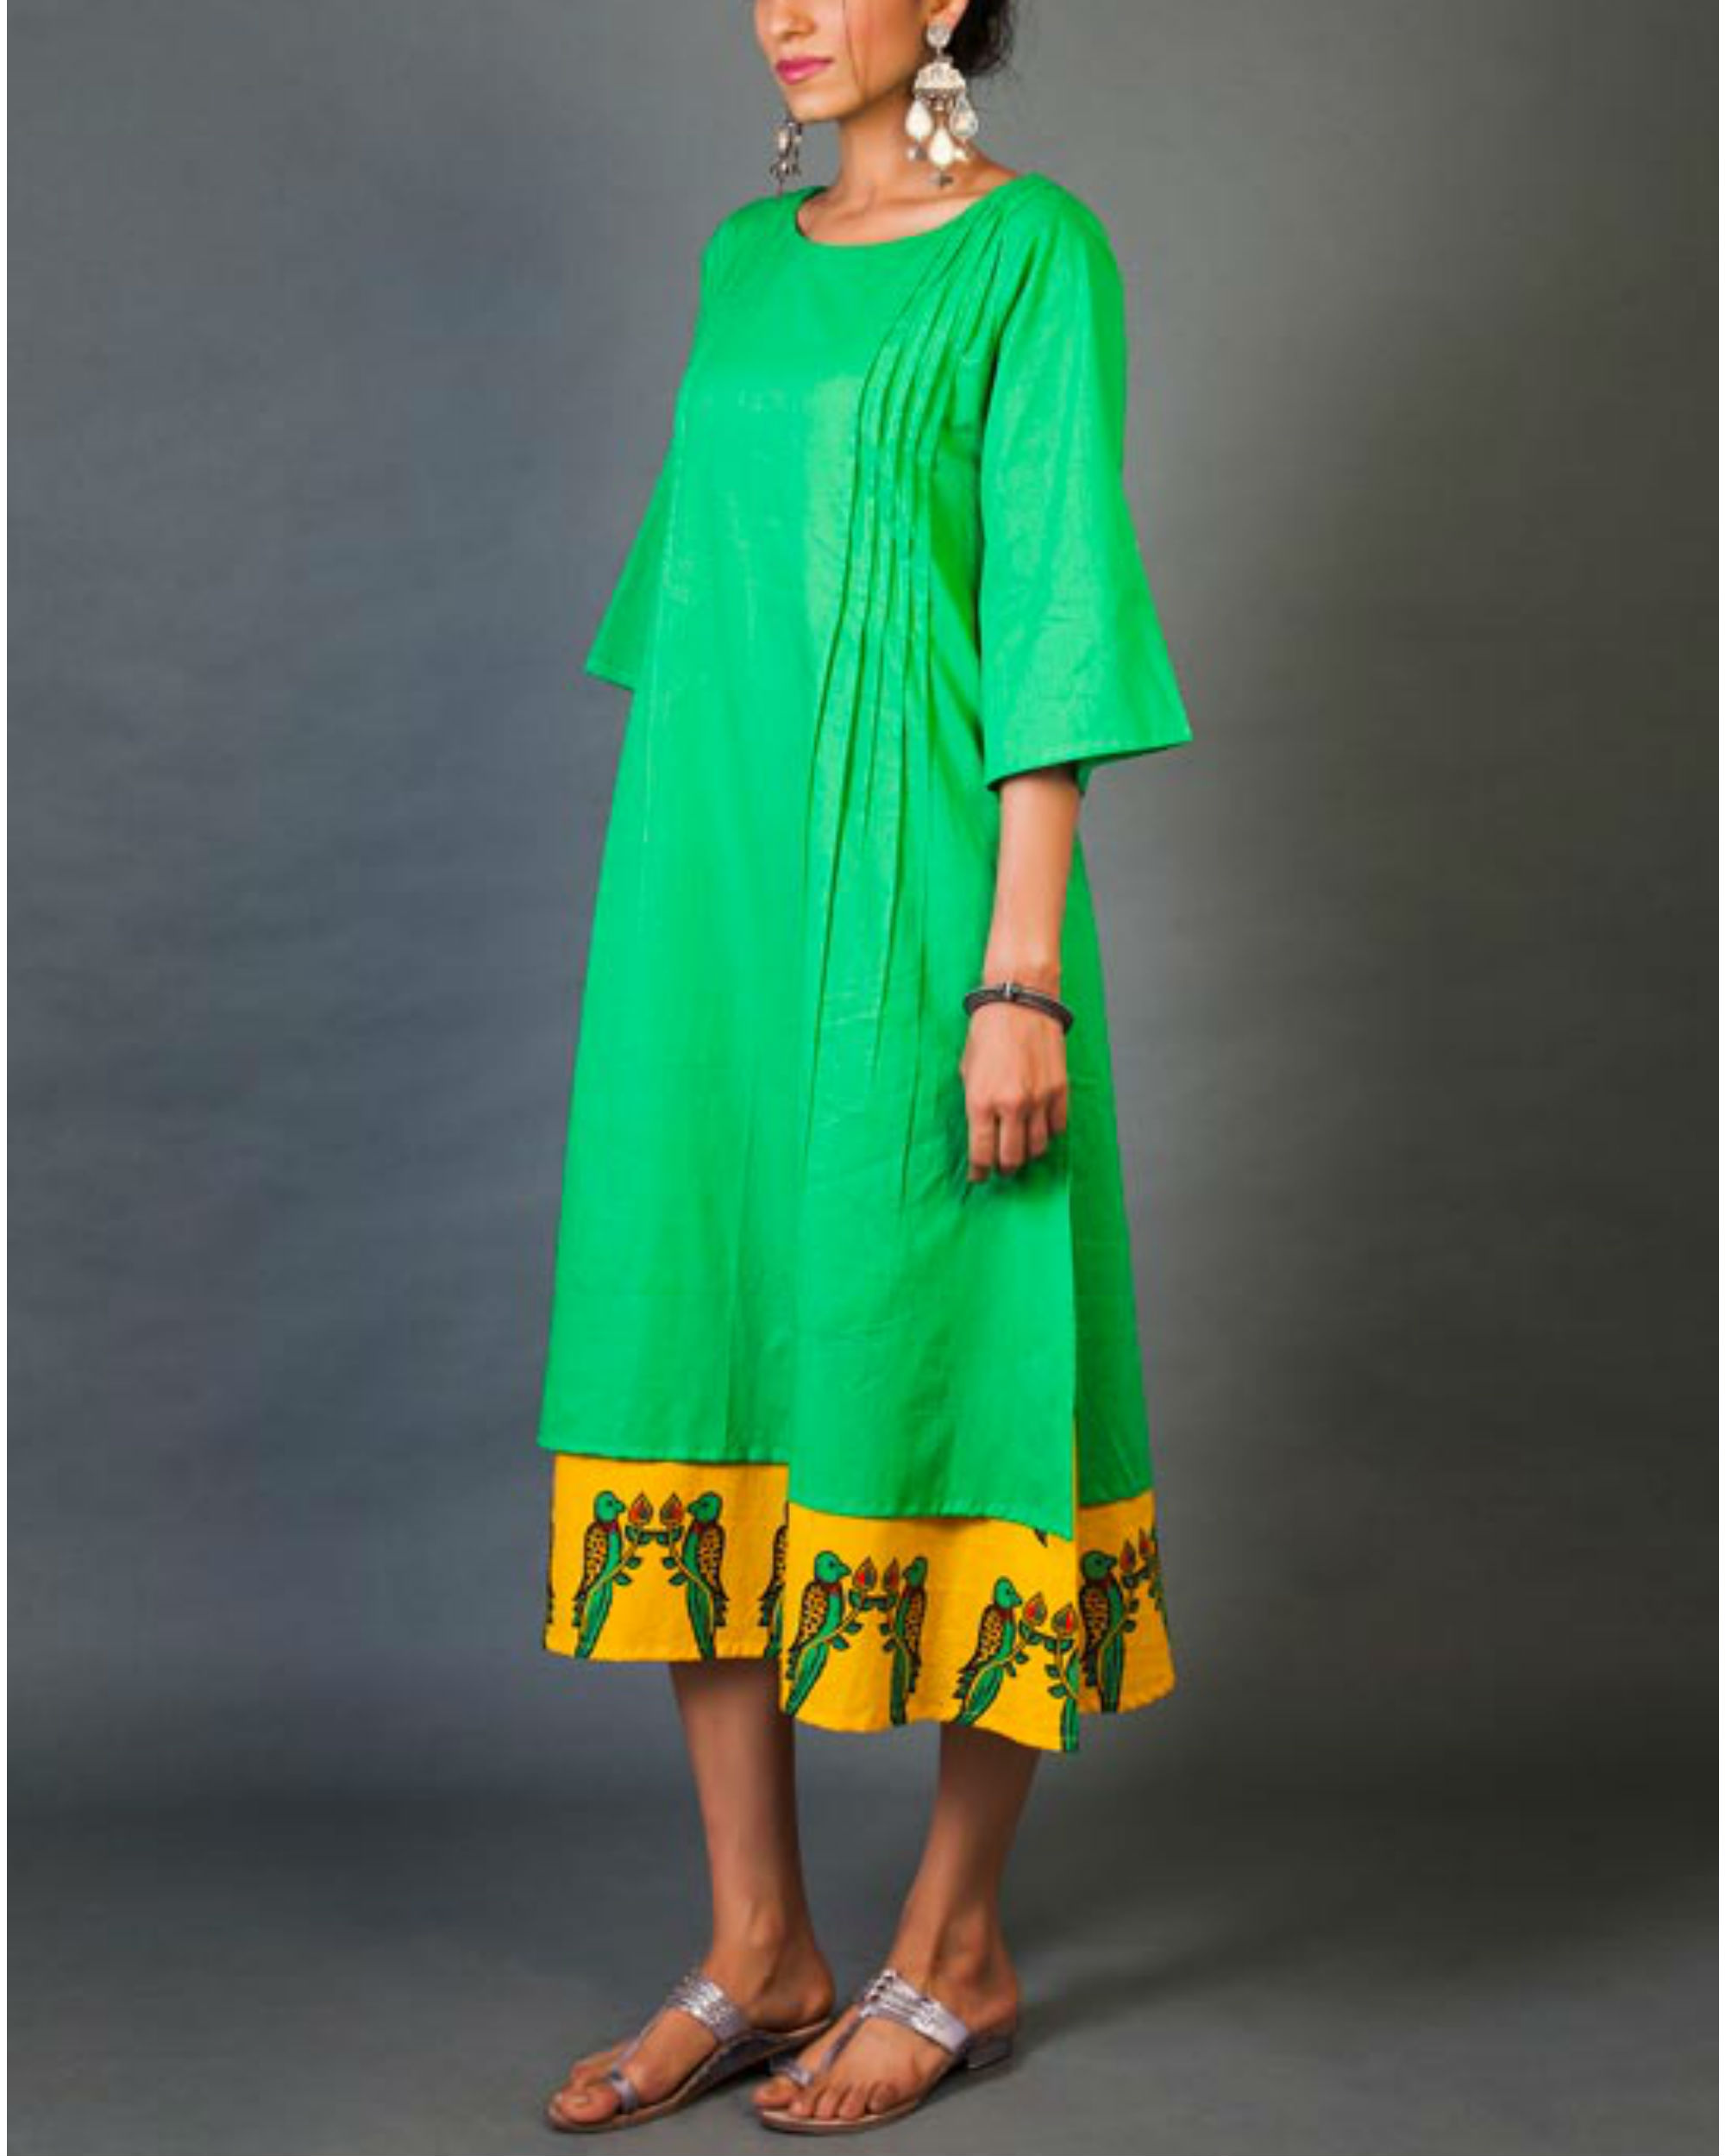 Green and yellow faux layered dress